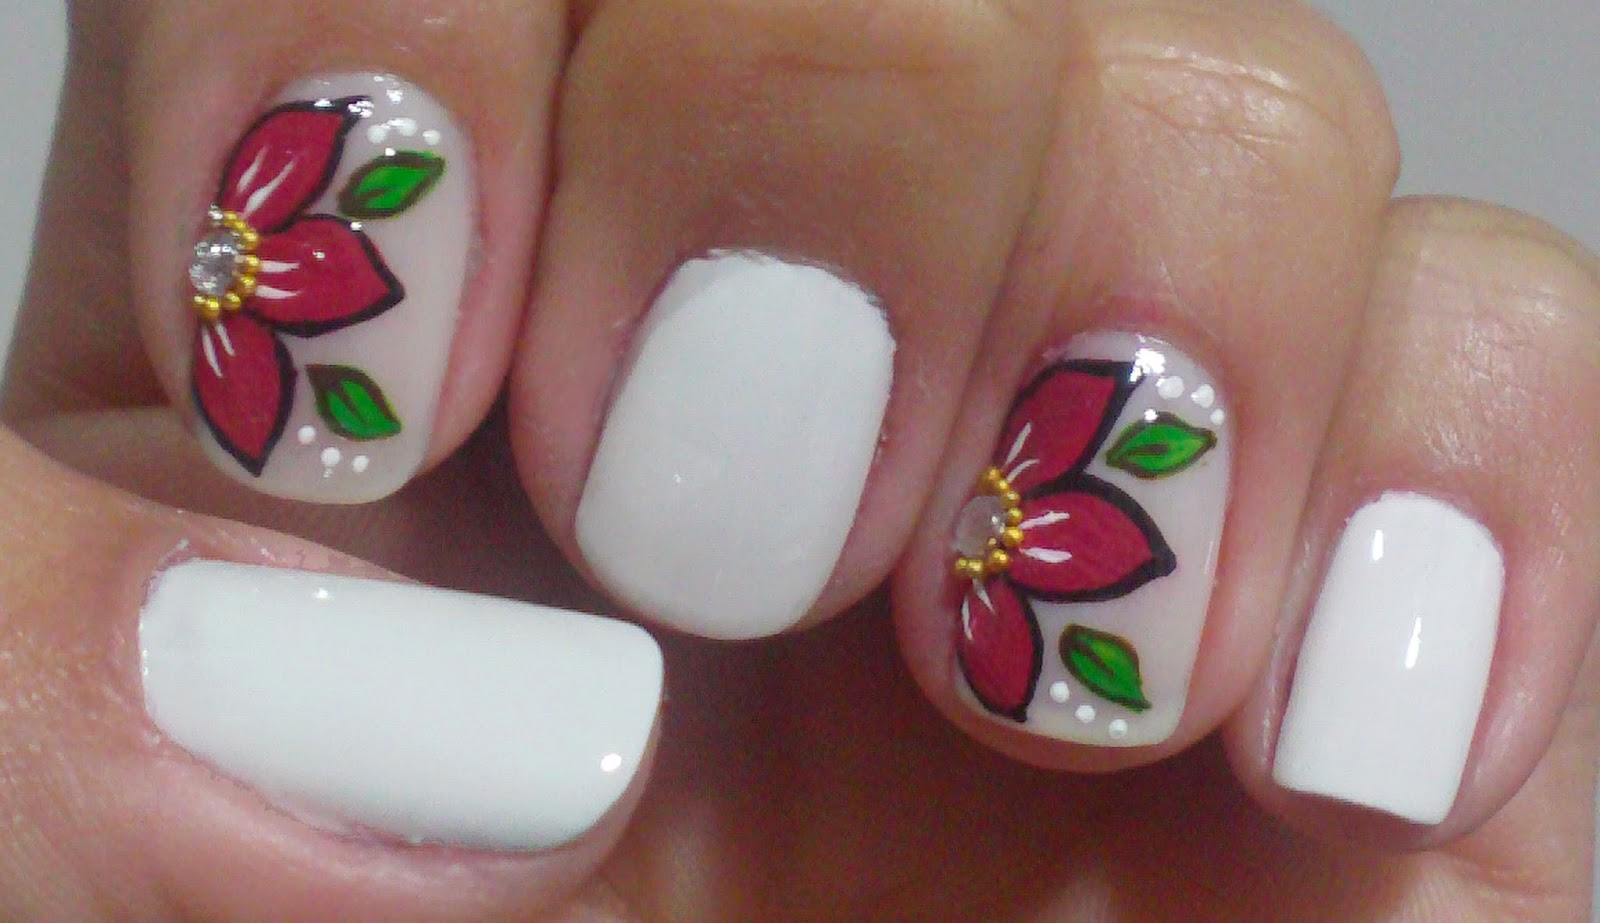 Fotos De Flores De Unhas Decoradas - Fotos de Unhas Decoradas Sofotos org